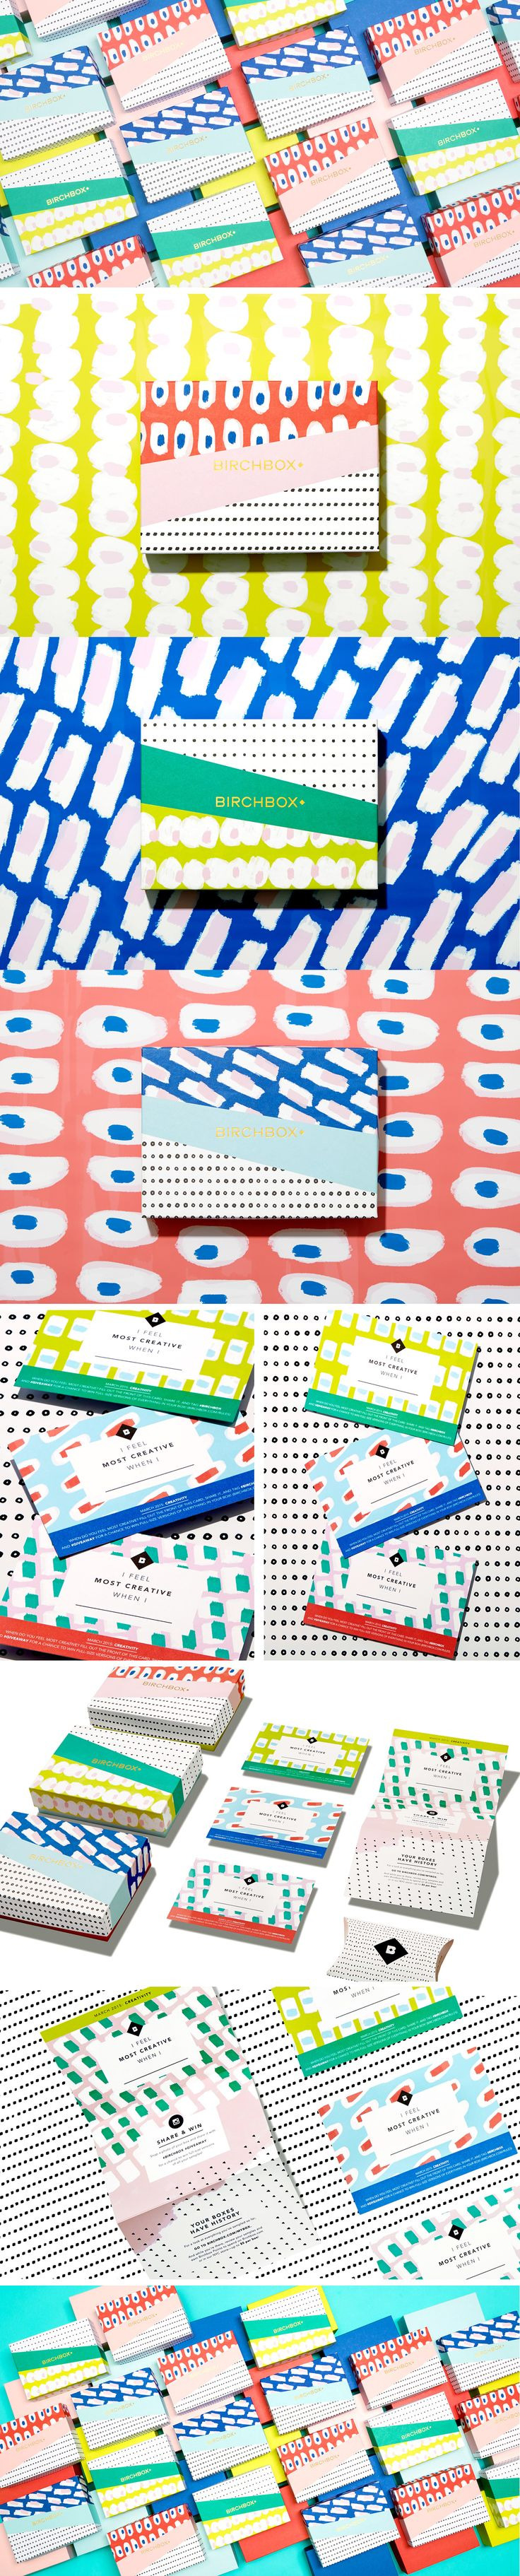 Birchbox March 2015 Subscription Box on Behance